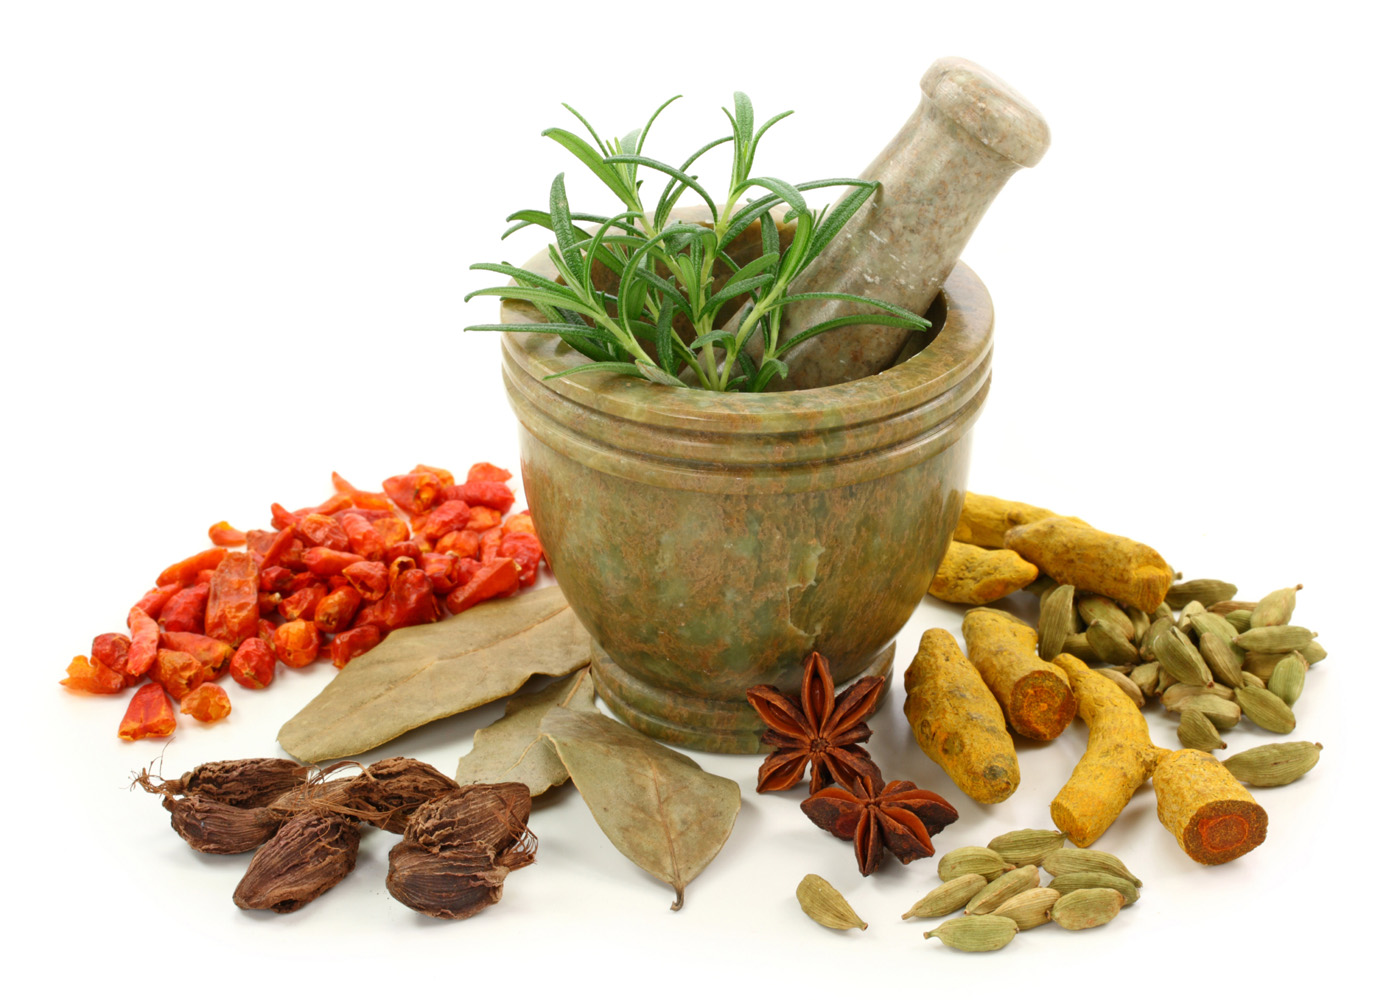 Pictures of various spices 6231